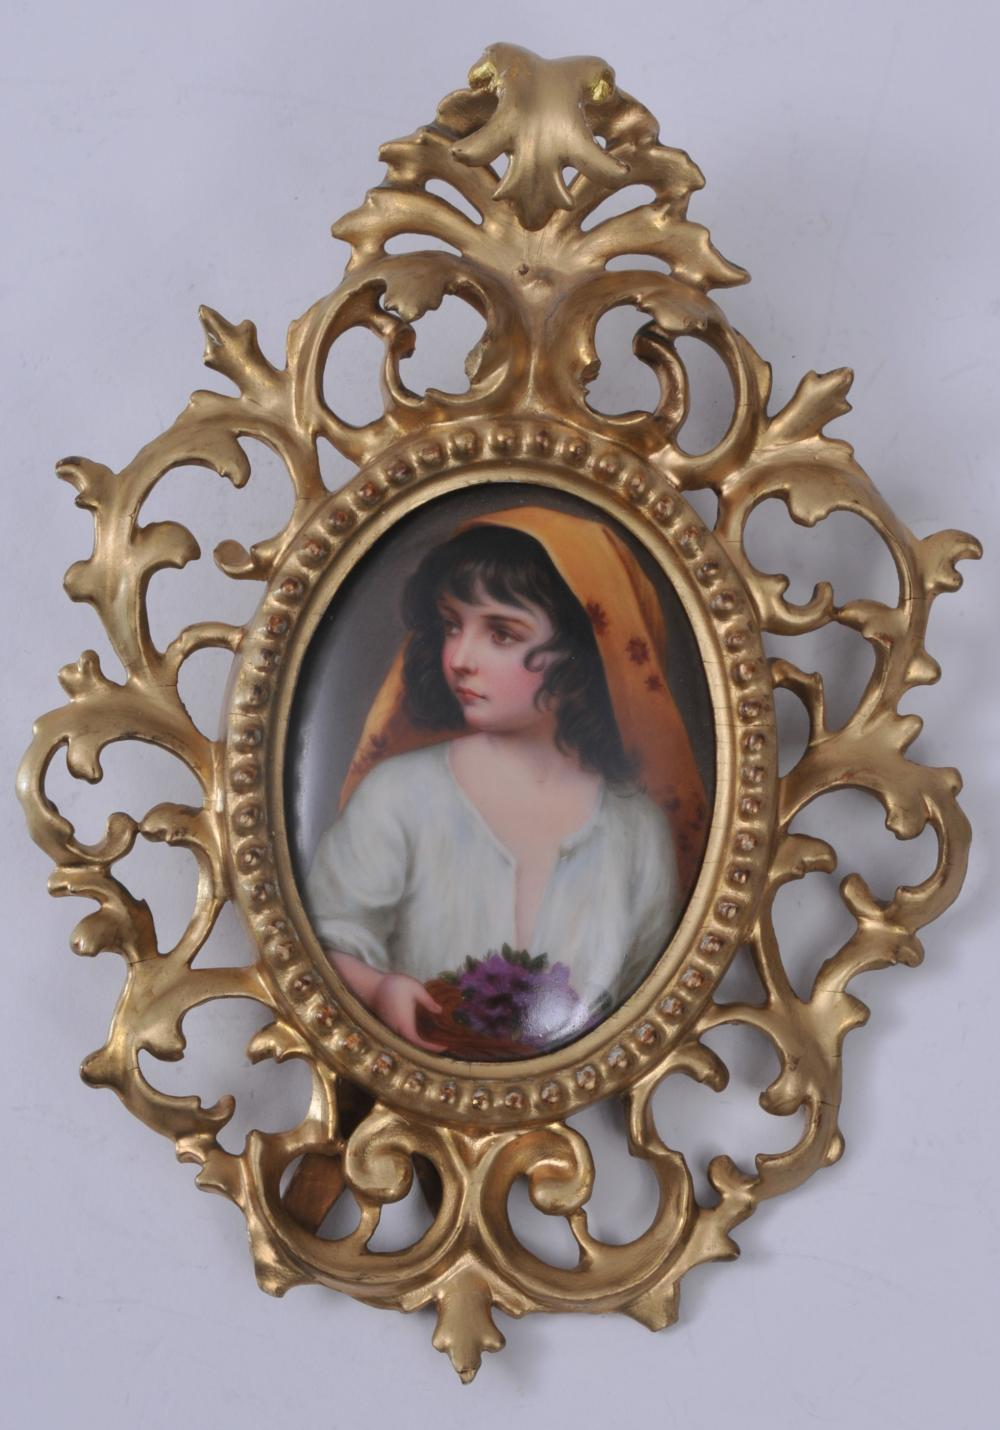 """19th century Continental painting on porcelain framed plaque. Oval hand painted scene of a young girl holding flowers. Gilt carved wood frame. Touch up to gilt on frame. 10-1/2"""" overall size. Plaque- 4-1/2""""  x 3-1/4""""."""